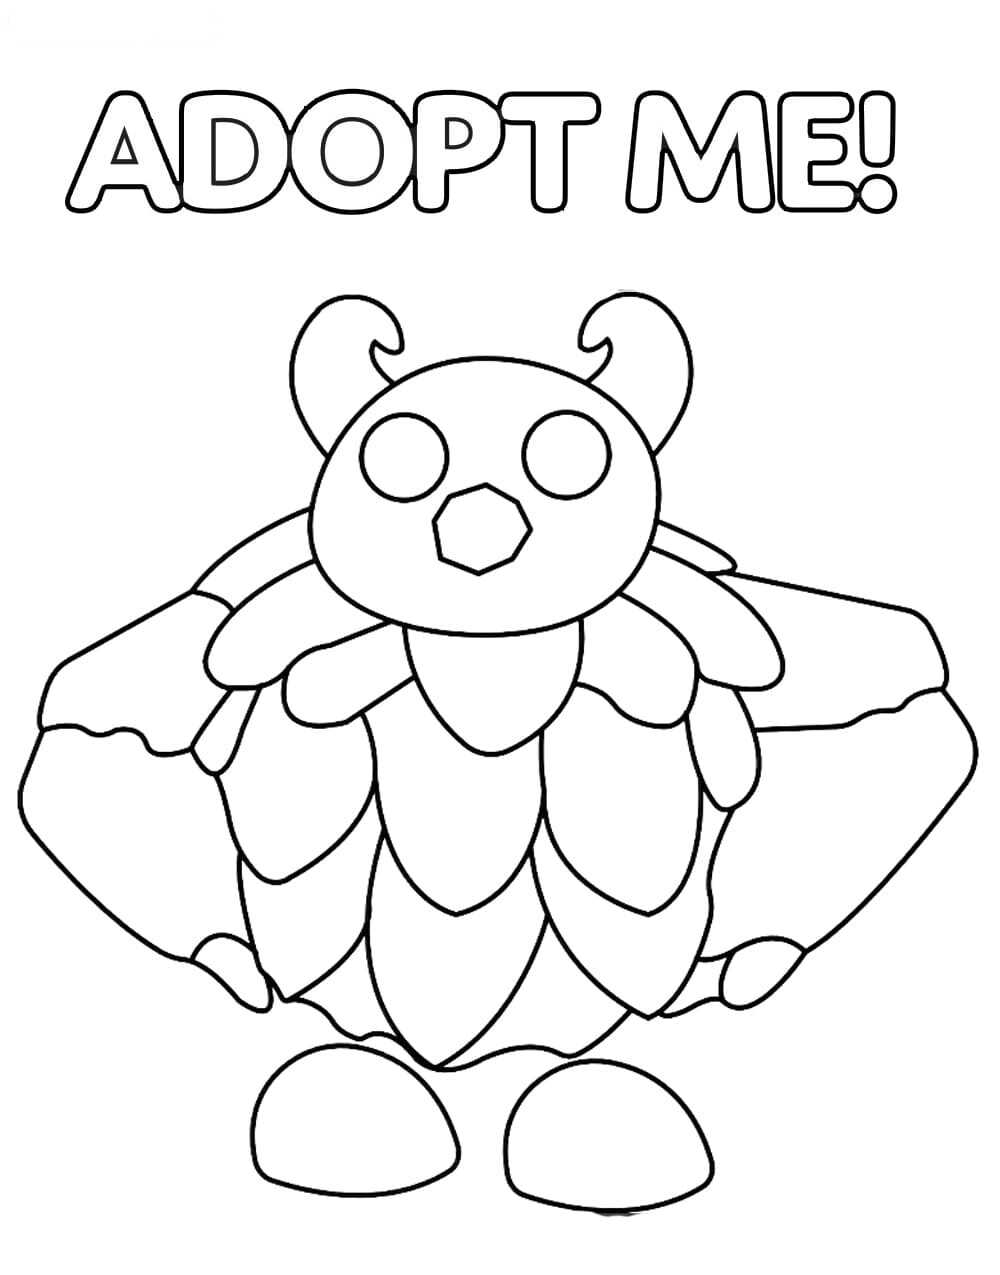 The Yeti from Adopt me has a large body with layers of fur Coloring Page